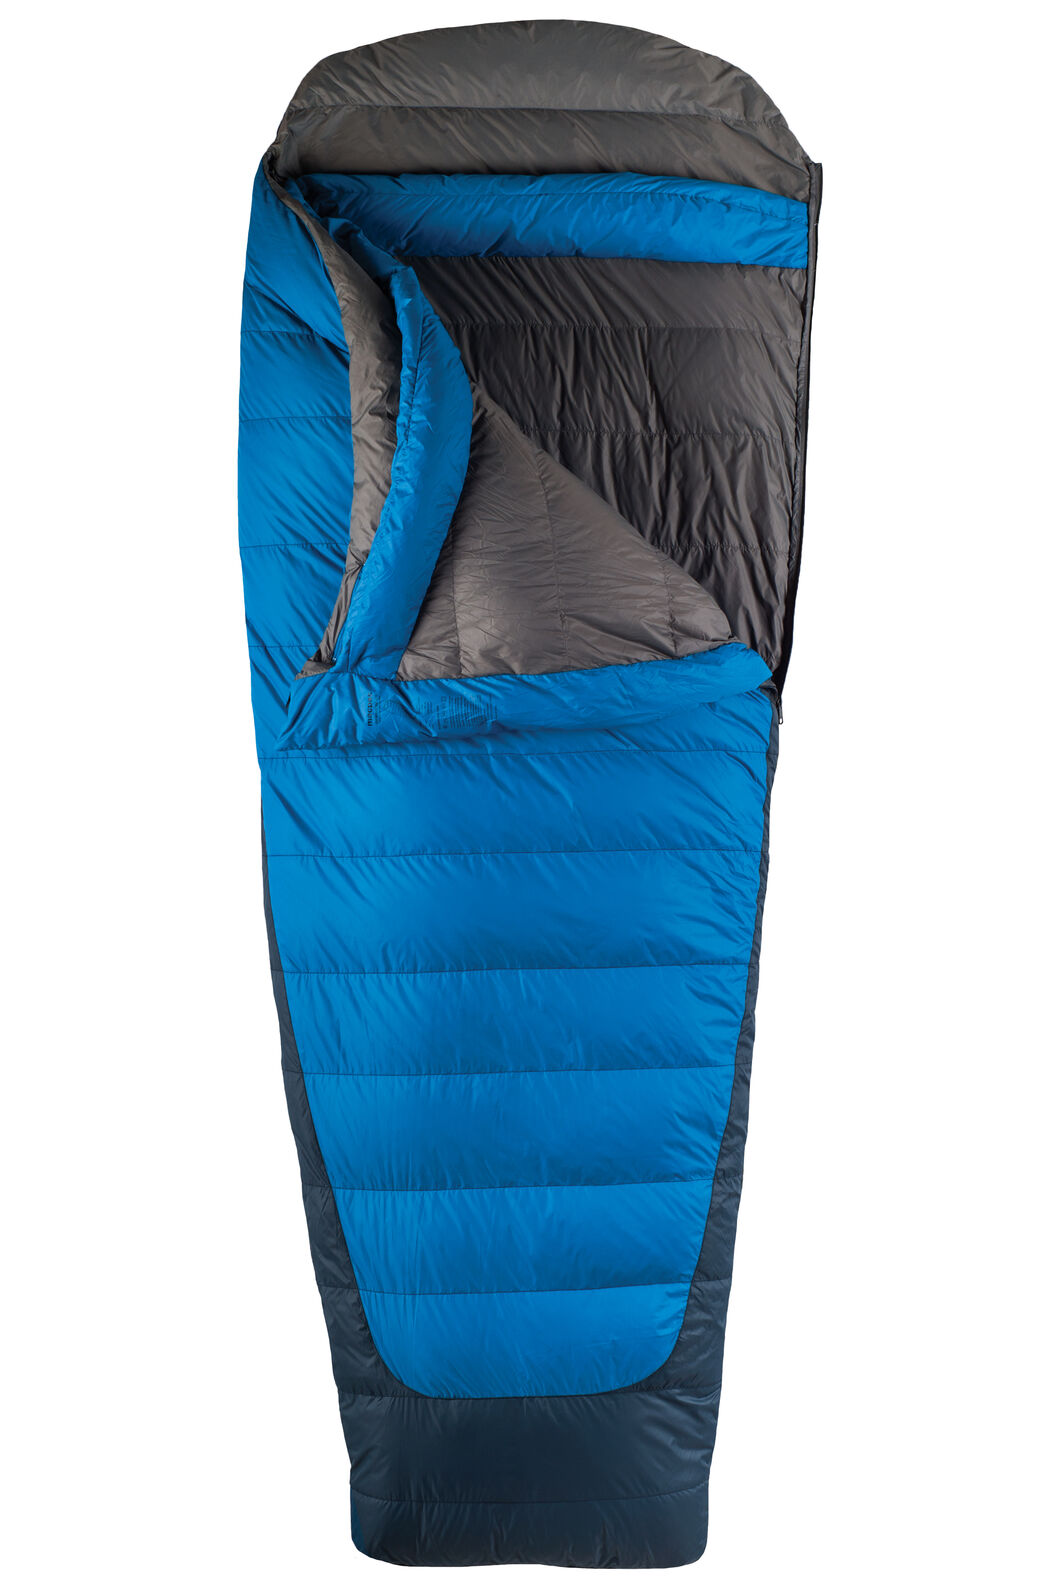 Macpac Escapade Down 500 Sleeping Bag - Extra Large, Classic Blue, hi-res